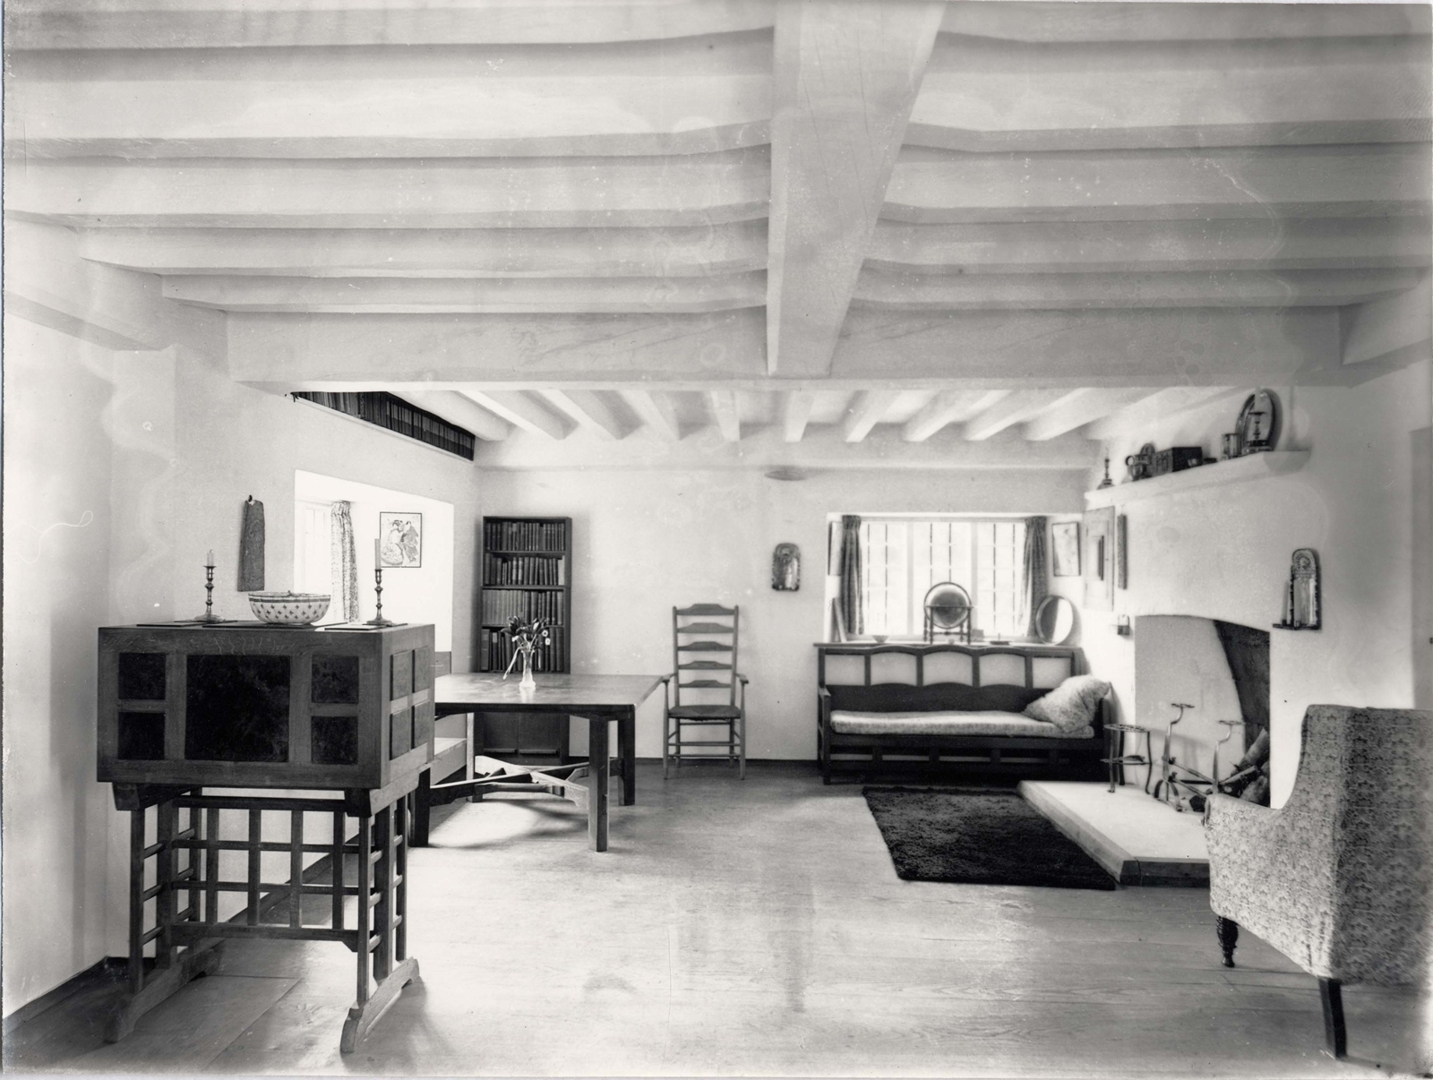 Interior of Beechanger, Sidney Barnsley's cottage at Sapperton, 'Cheltenham Art Gallery and Museum' image